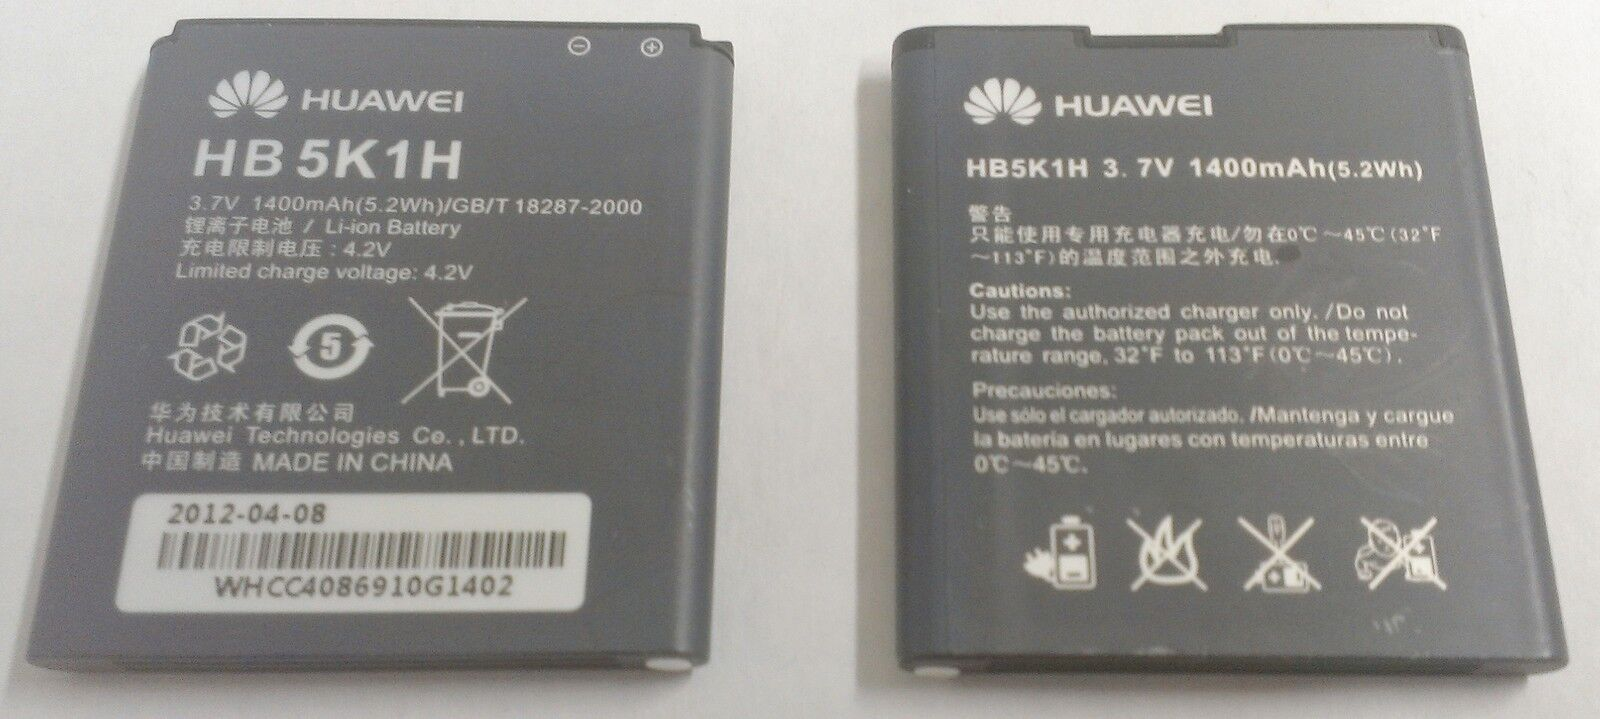 Huawei OEM Battery for Huawei Prism U8651 T-Mobile HB5K1H GB/T 18287-2000 at Sears.com